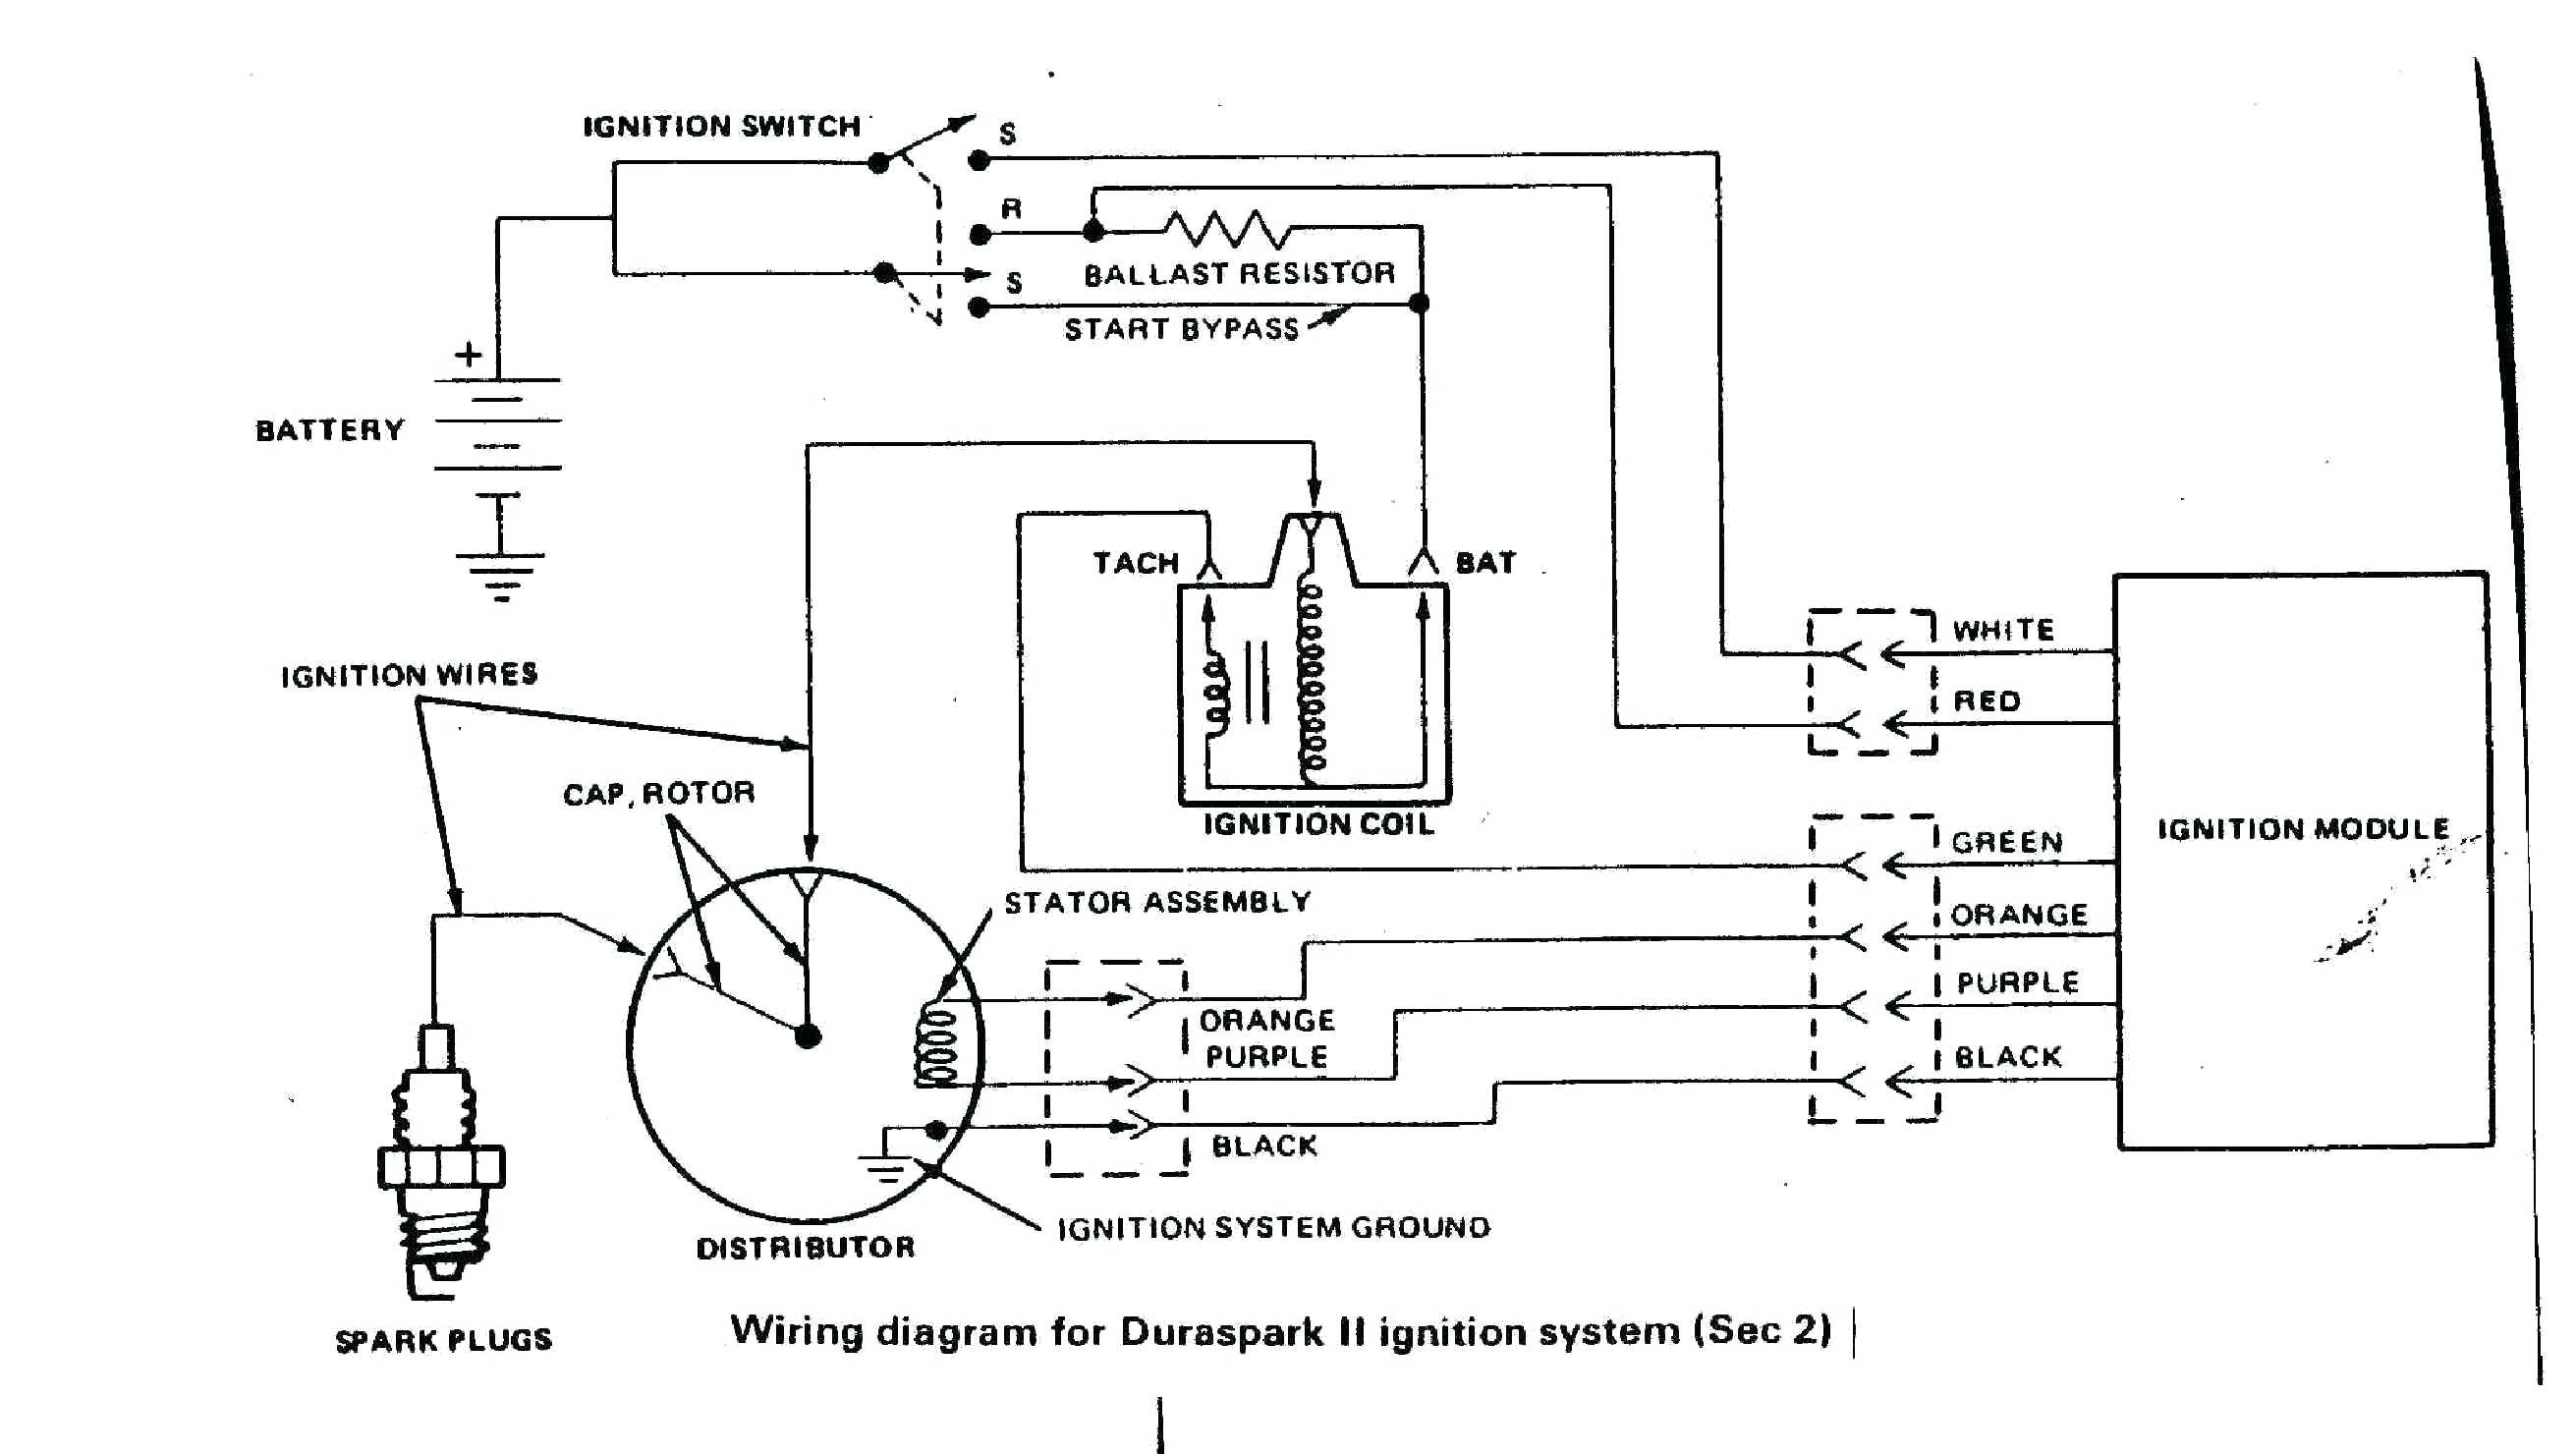 Ford 302 Distributor Wiring - System Wiring Diagram Mallory Ignition Wiring Diagram Hei Distributor on